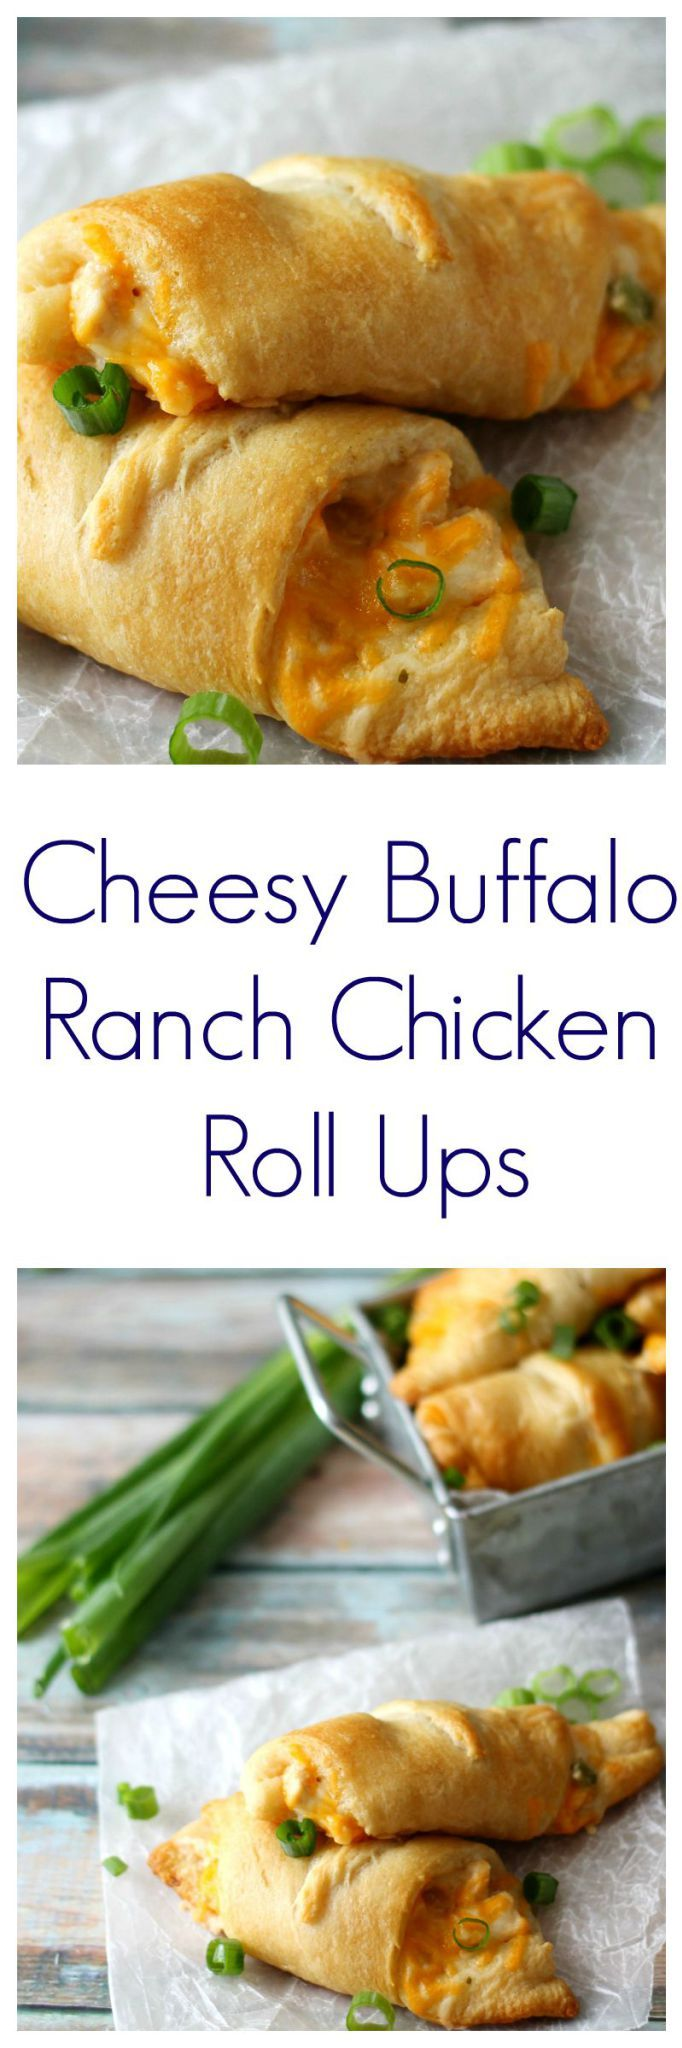 Cheesy Buffalo Ranch Chicken Roll Ups